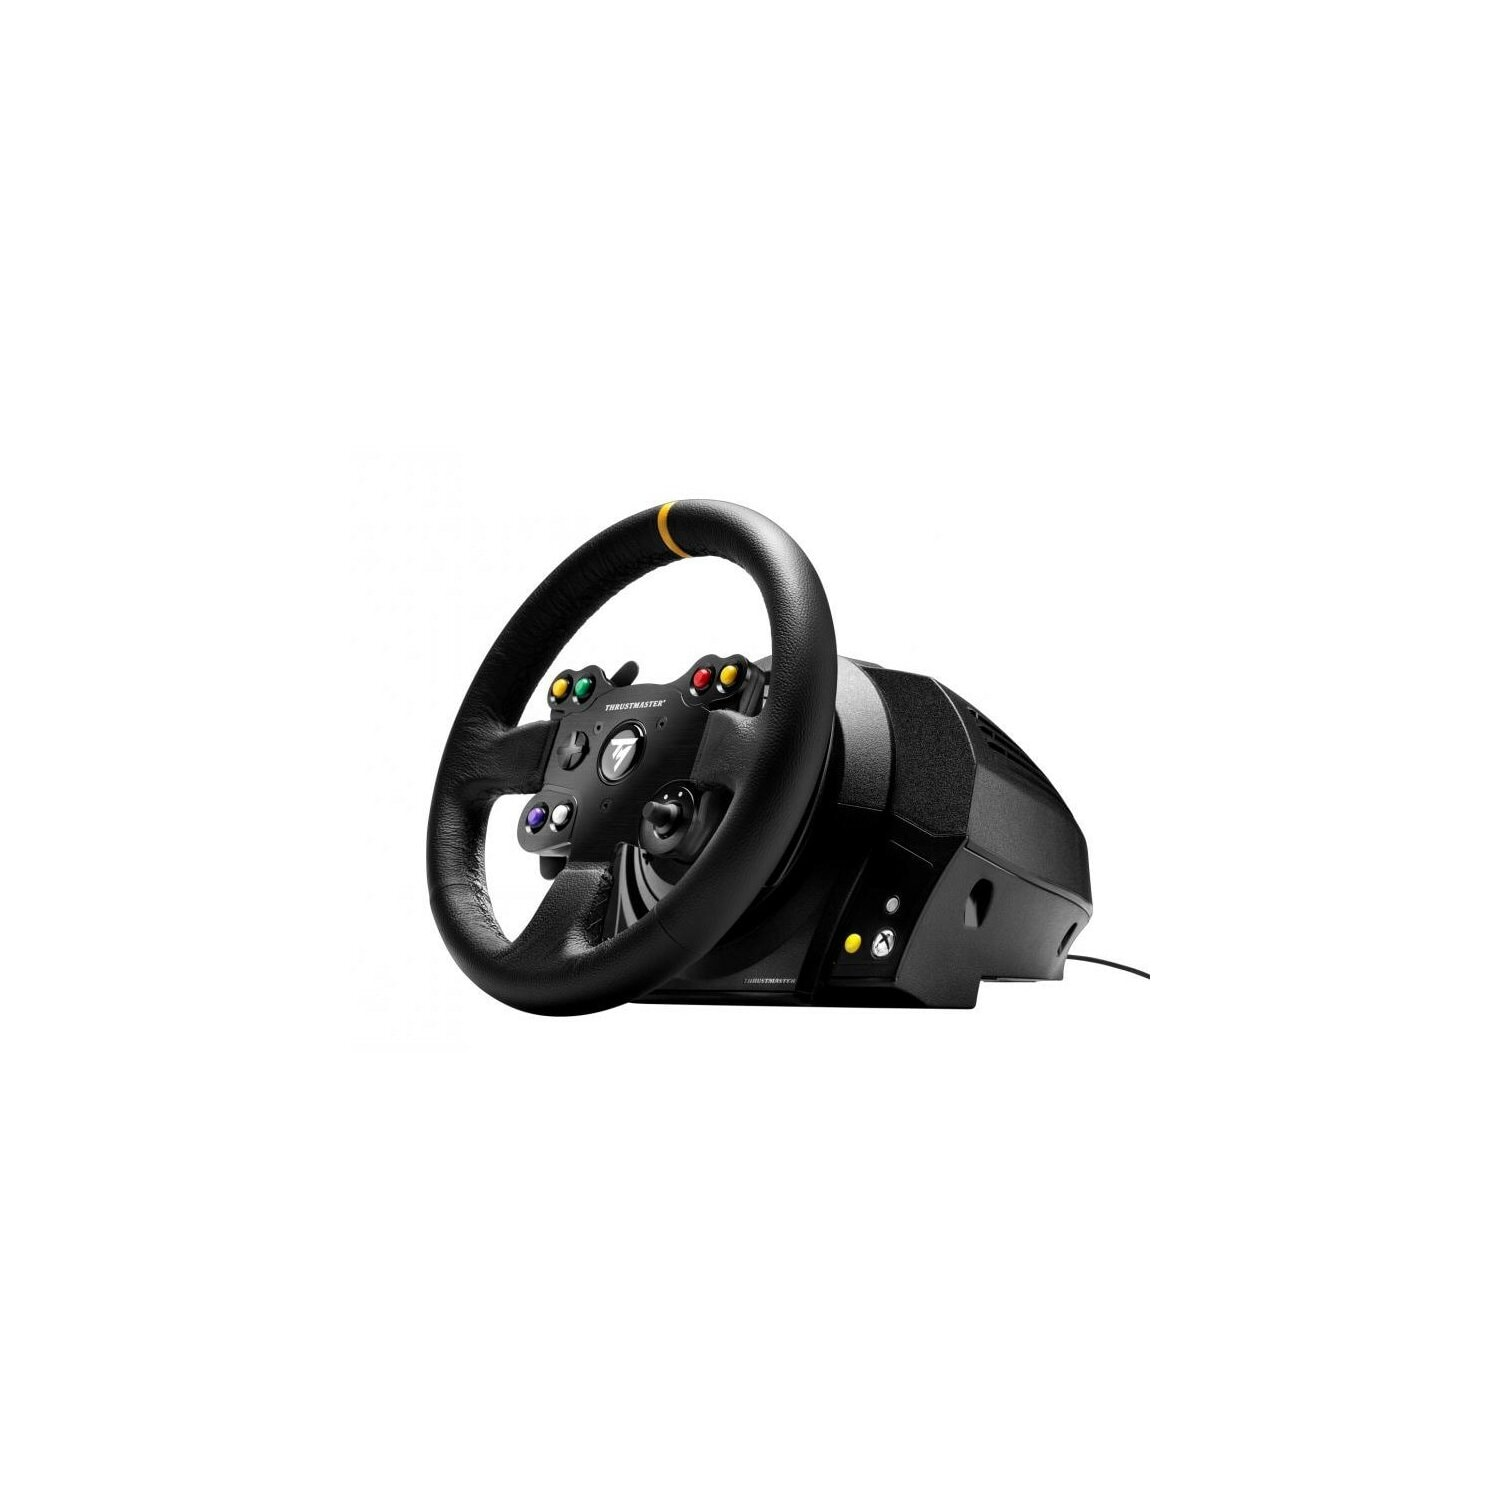 kierownica thrustmaster tx racing wheel leather edition do. Black Bedroom Furniture Sets. Home Design Ideas